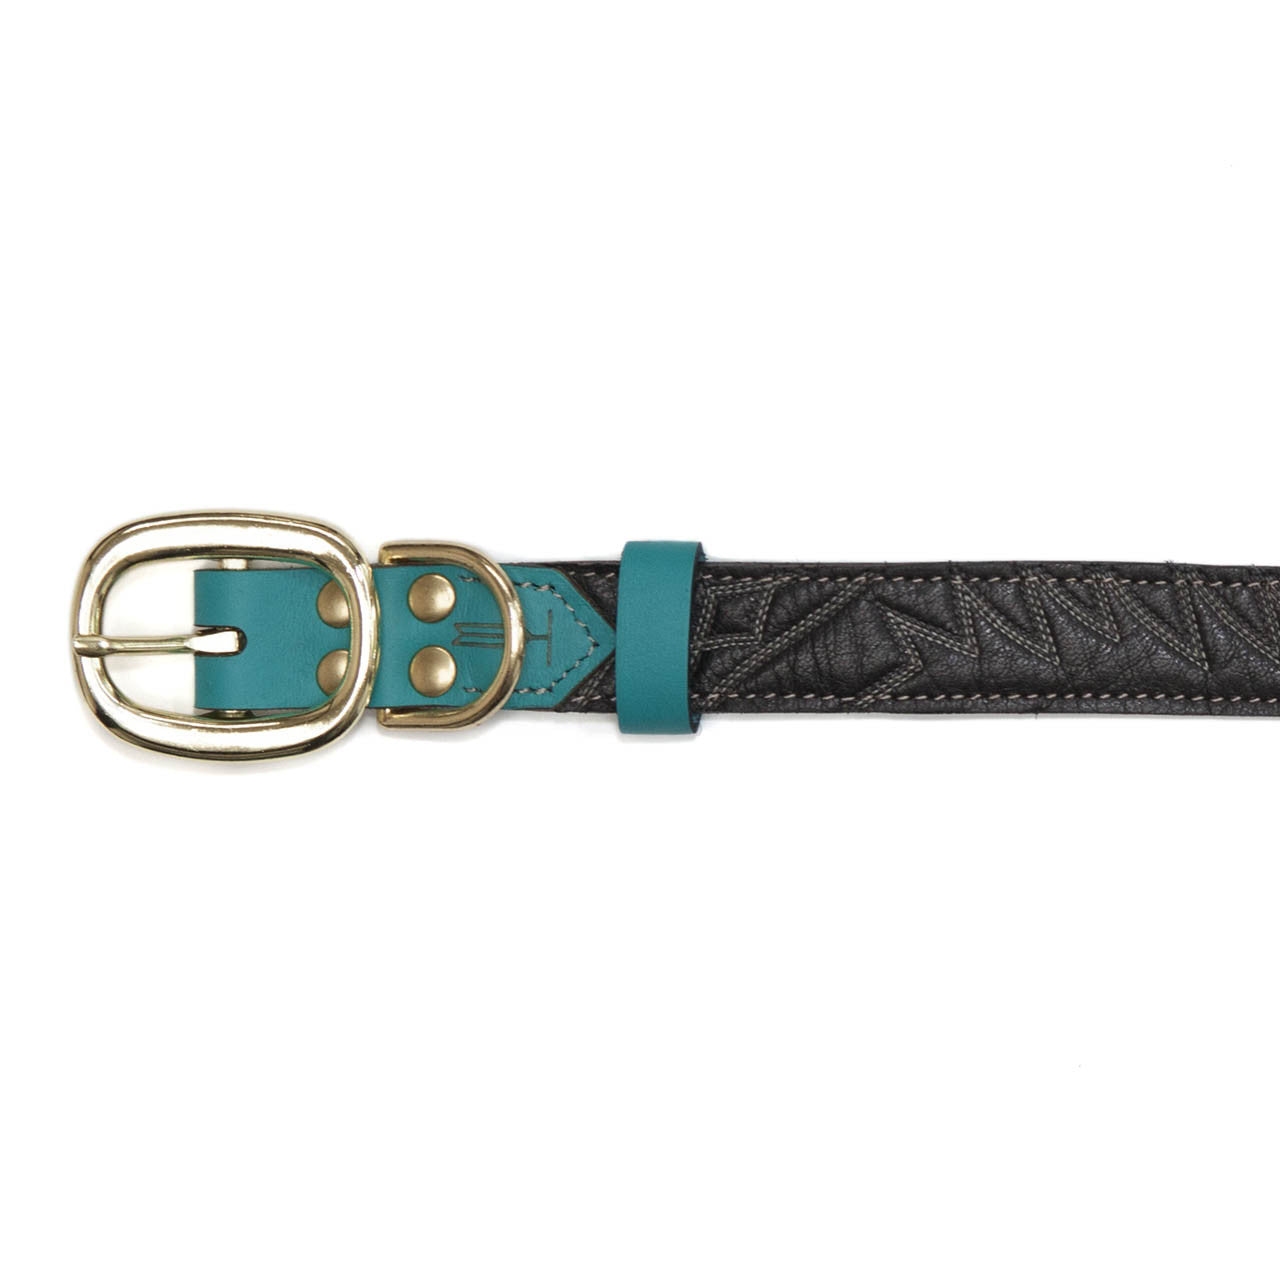 Turquoise Dog Collar with Black Leather + White Spike Stitching (buckle)